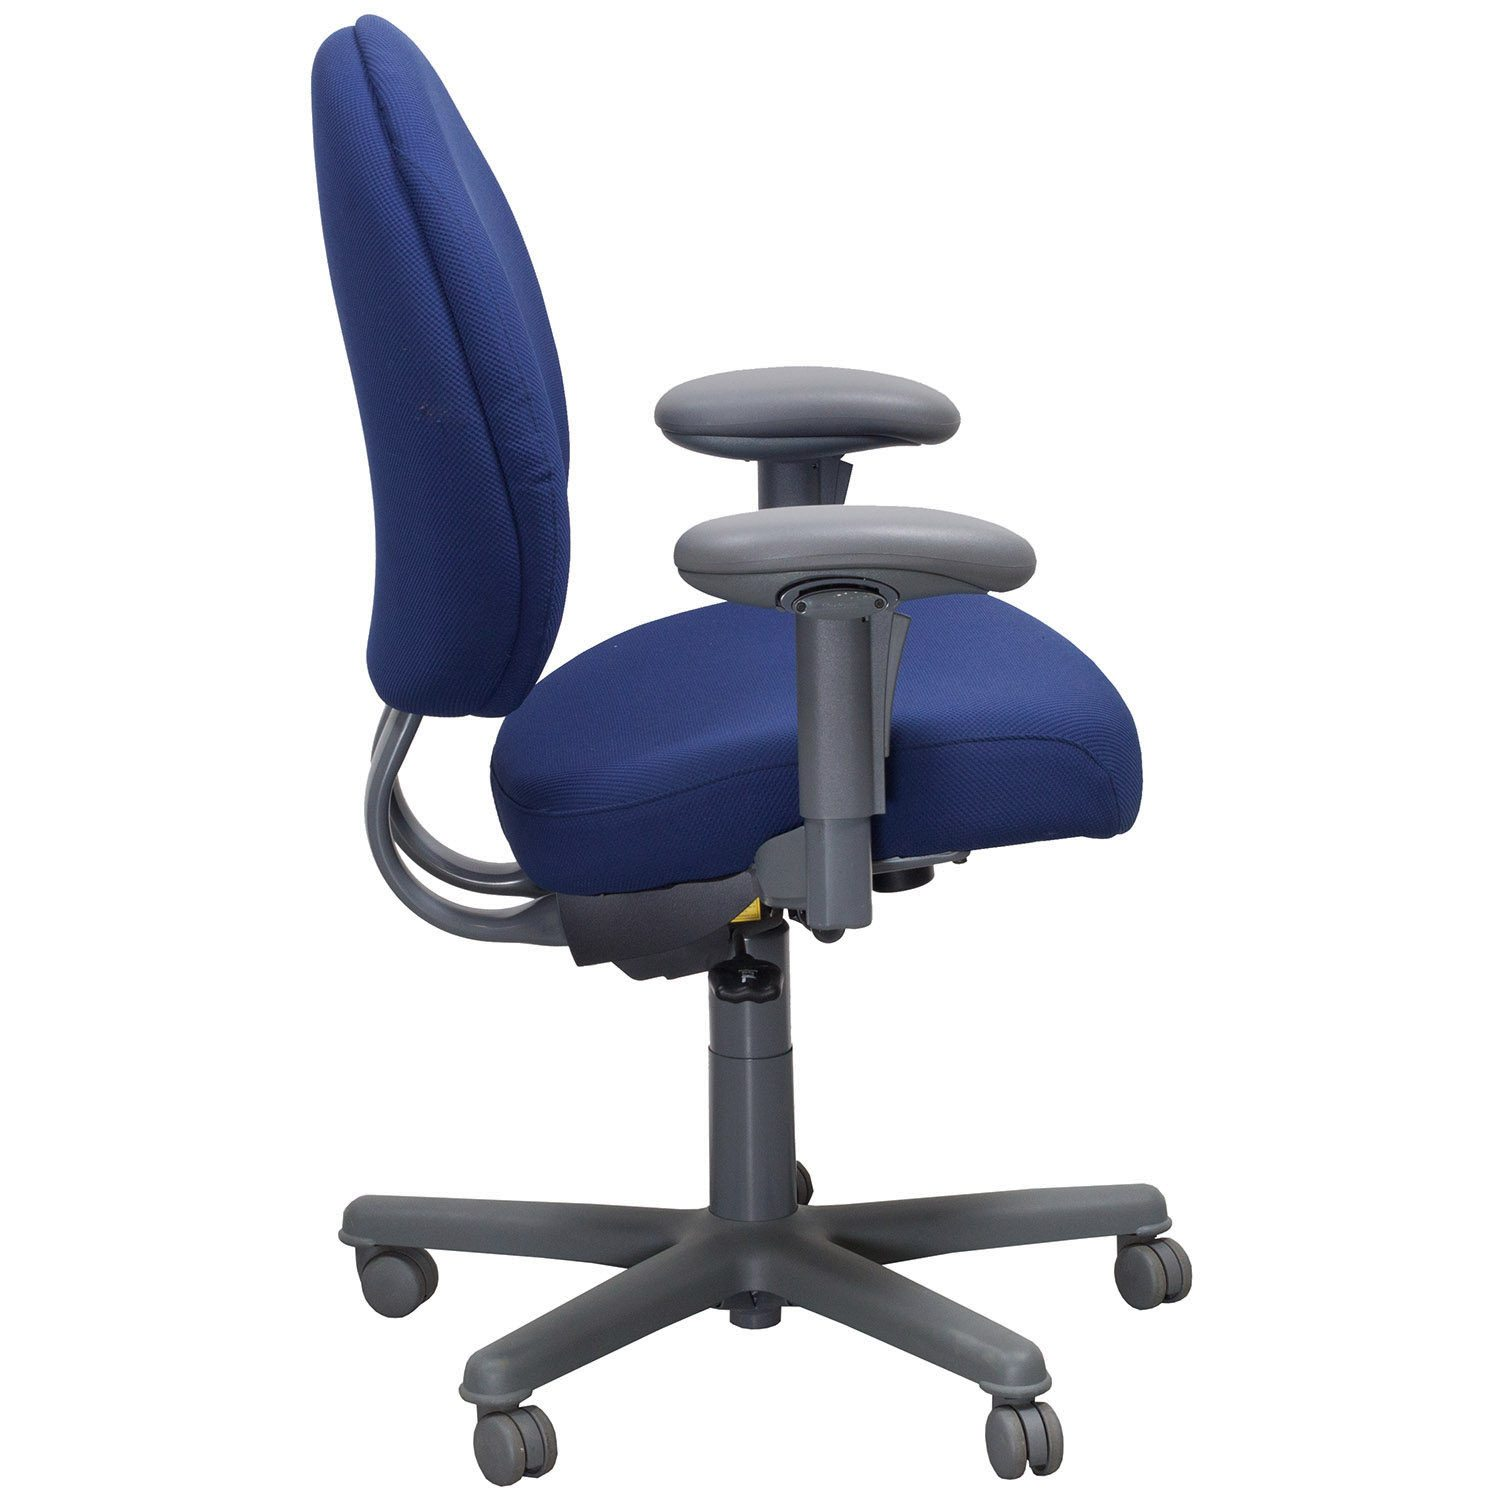 Steelcase Criterion Chair Steelcase Criterion Task Chairs Steelcase Criterion Steelcase